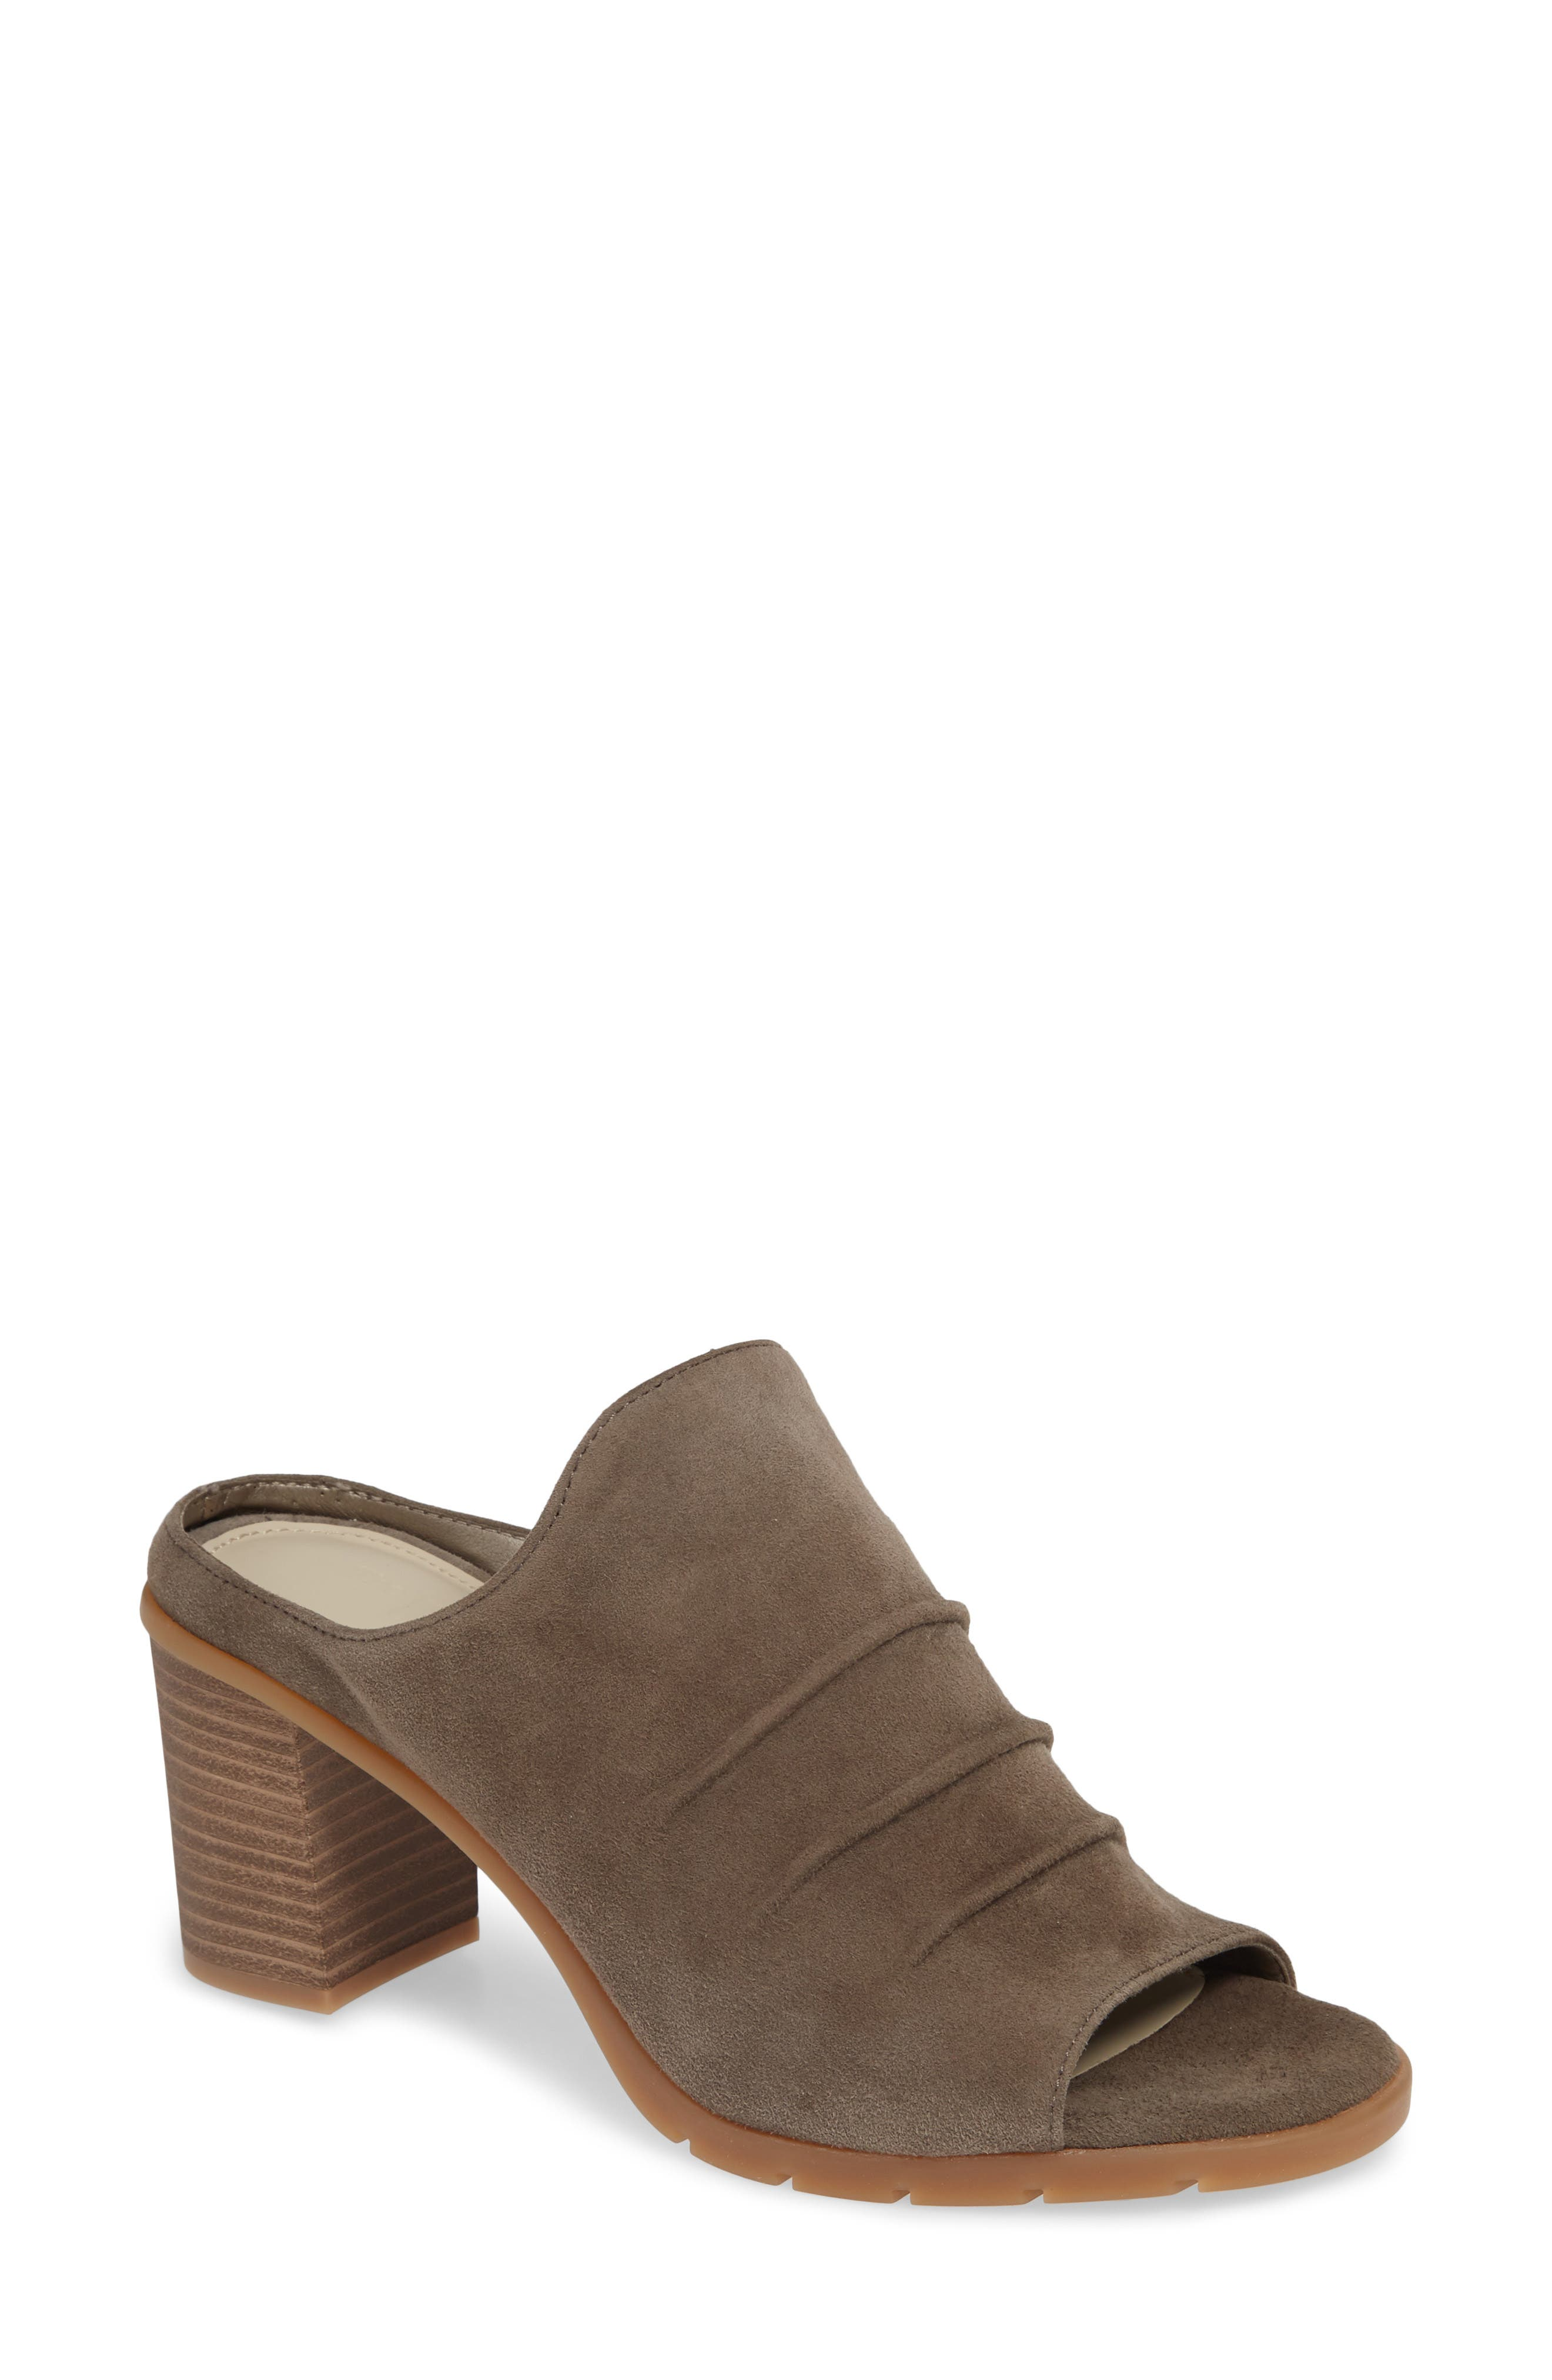 Aim to Pleat Mule,                             Main thumbnail 1, color,                             BROWN LEATHER